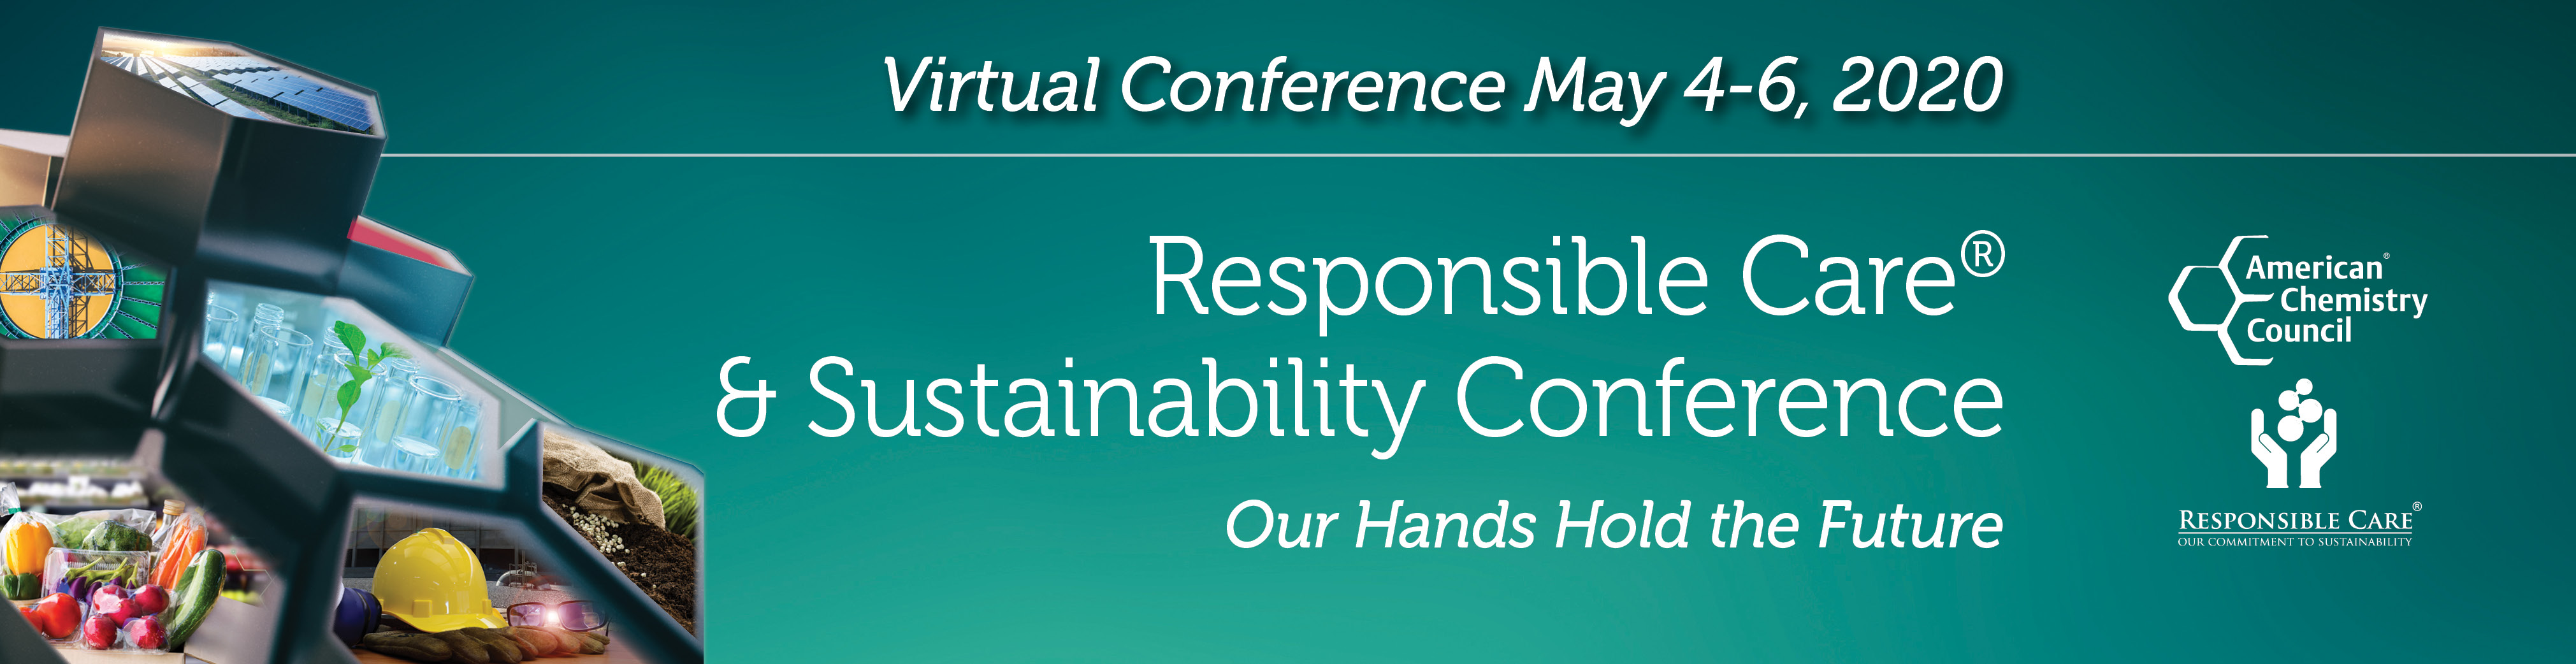 2020 Responsible Care & Sustainability Conference Virtual Event